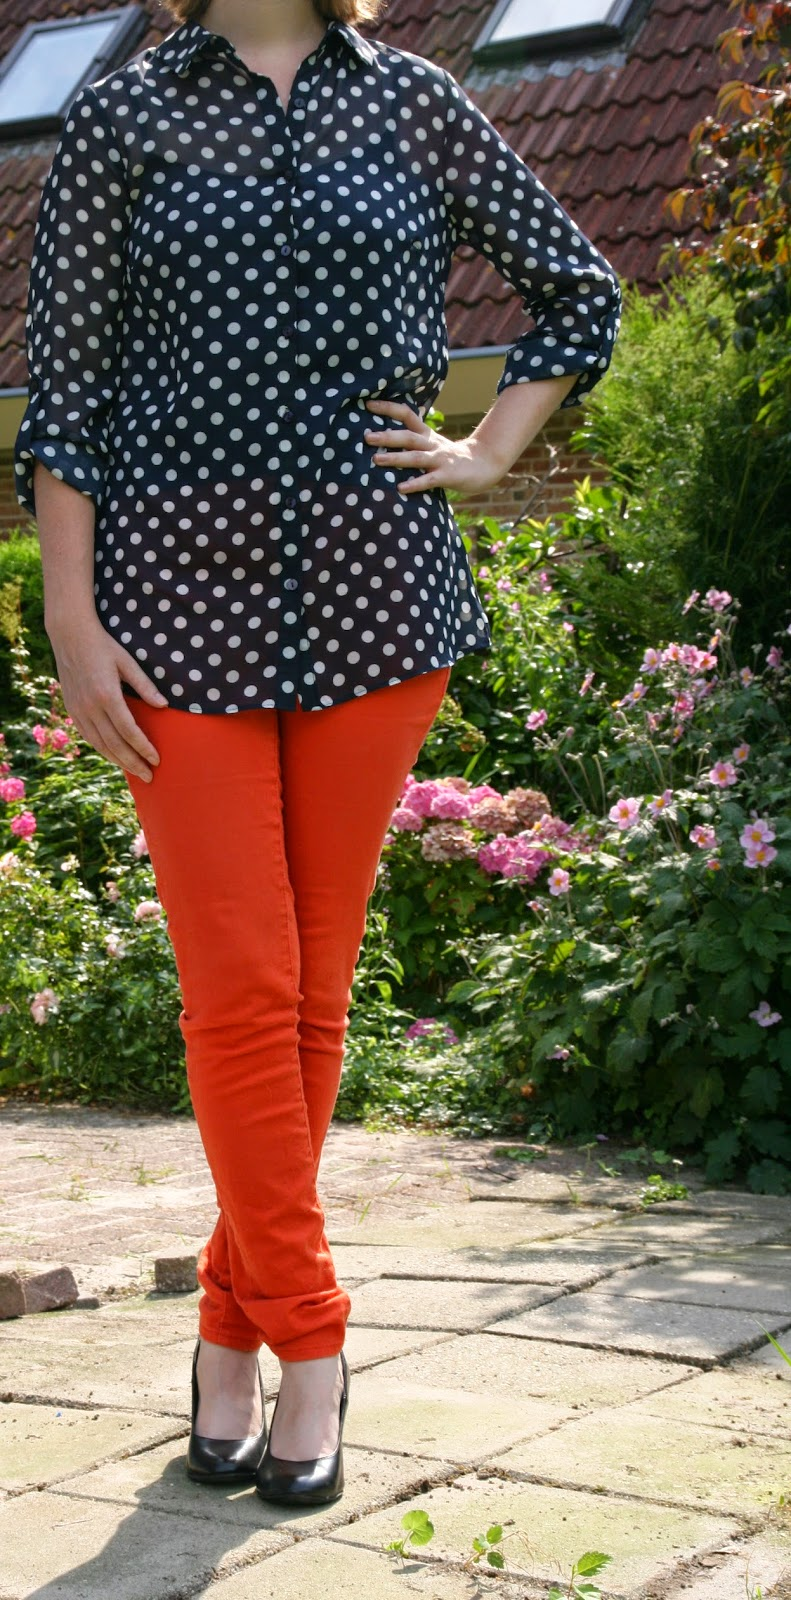 http://hmlovur.blogspot.nl/2014/07/outfits-of-week-week-30.html